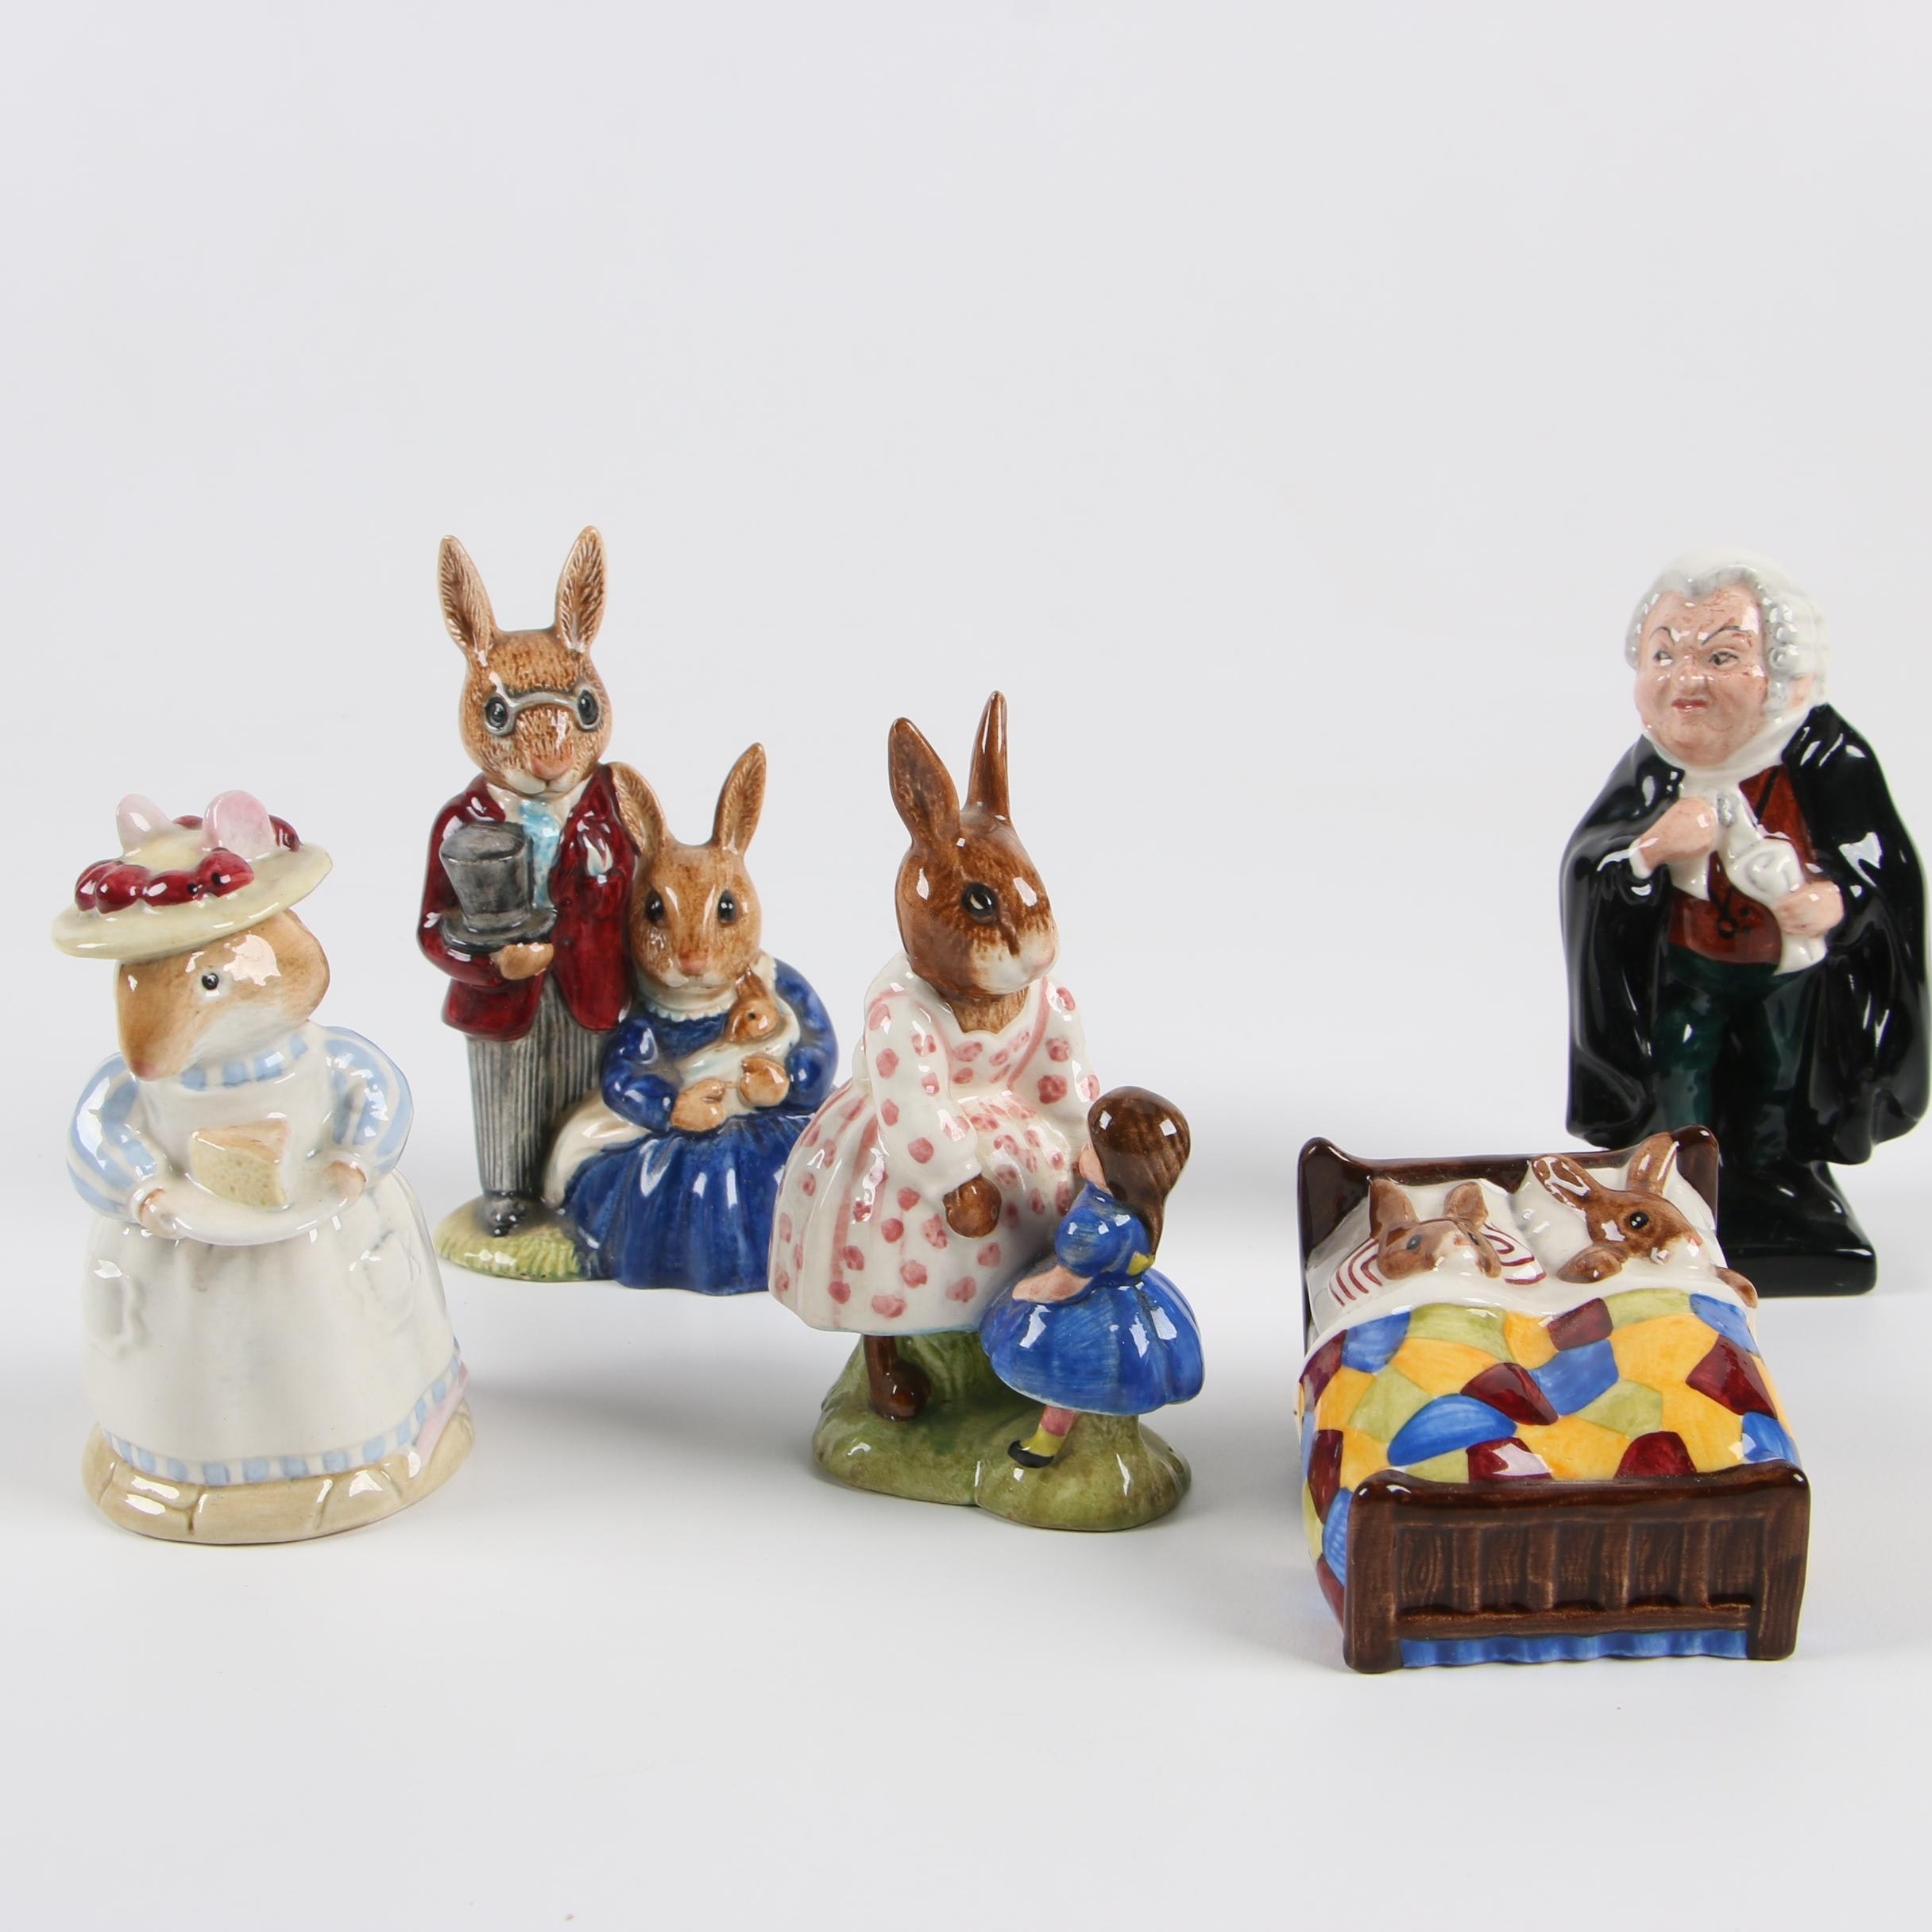 Vintage Royal Doulton Porcelain Figurines, Including Bunnykins